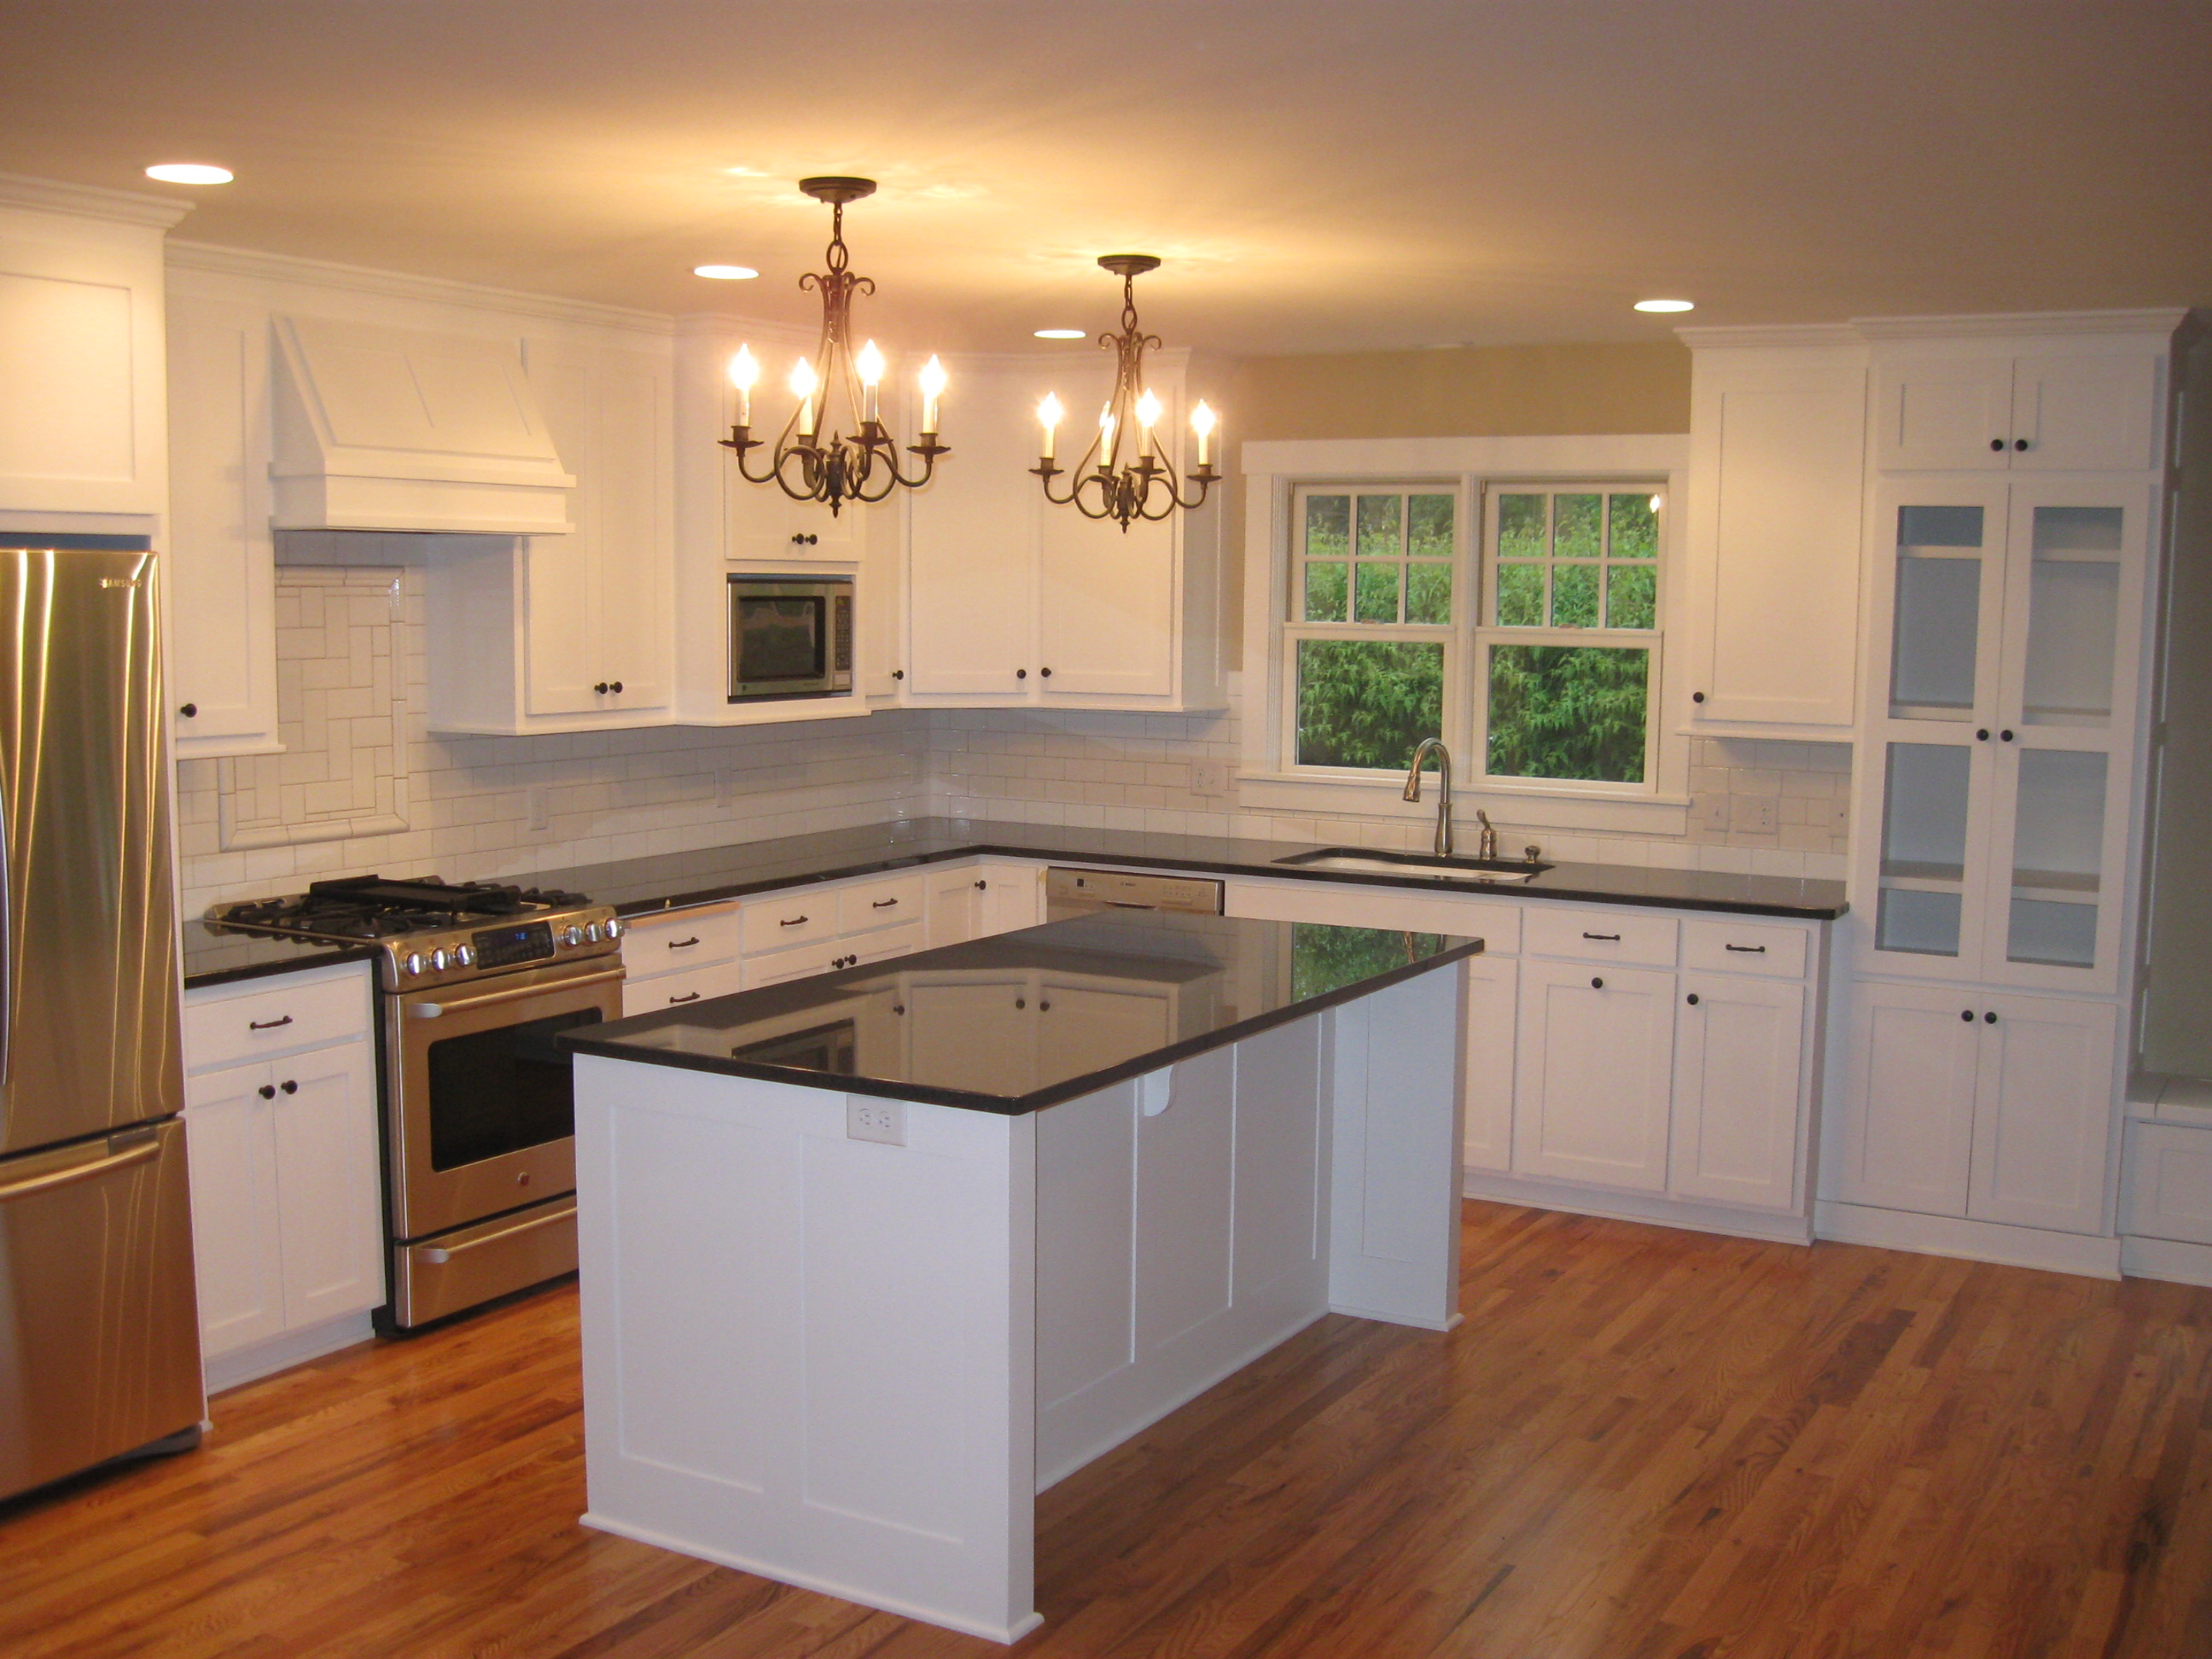 Ordinaire Kitchen Made Cabinets